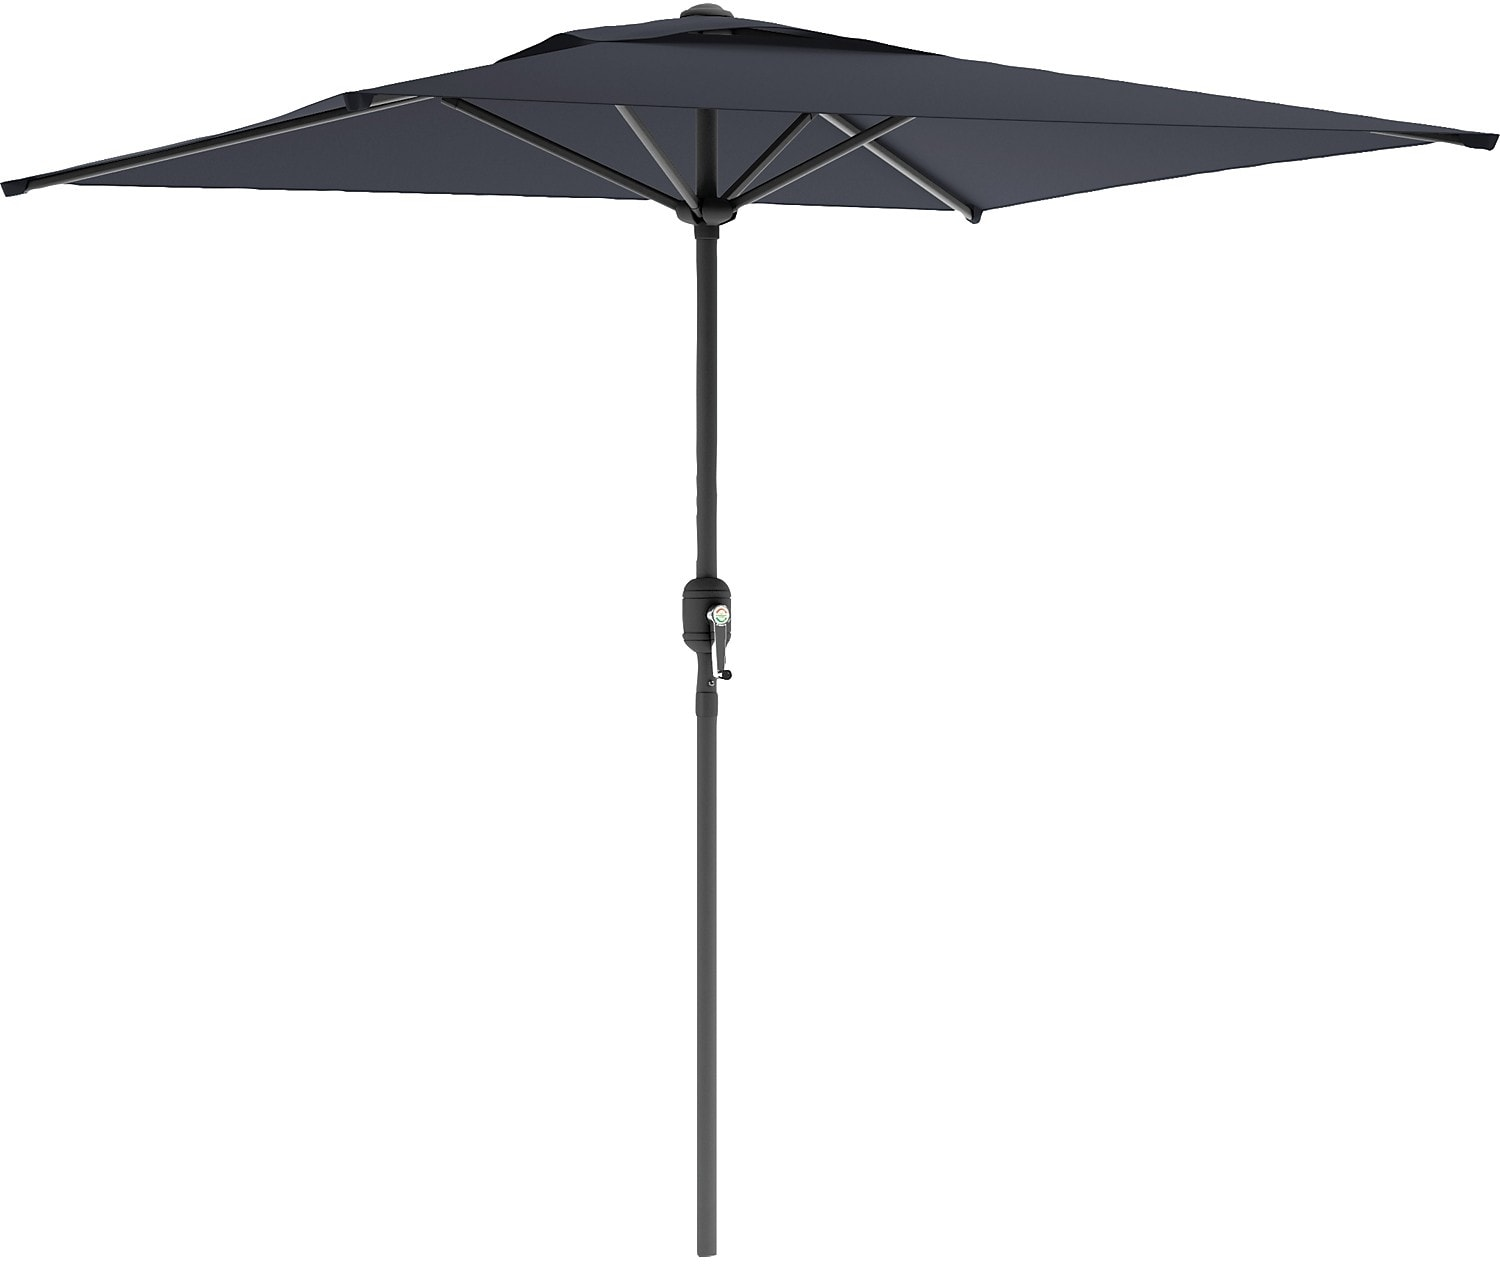 Square Patio Umbrella - Black